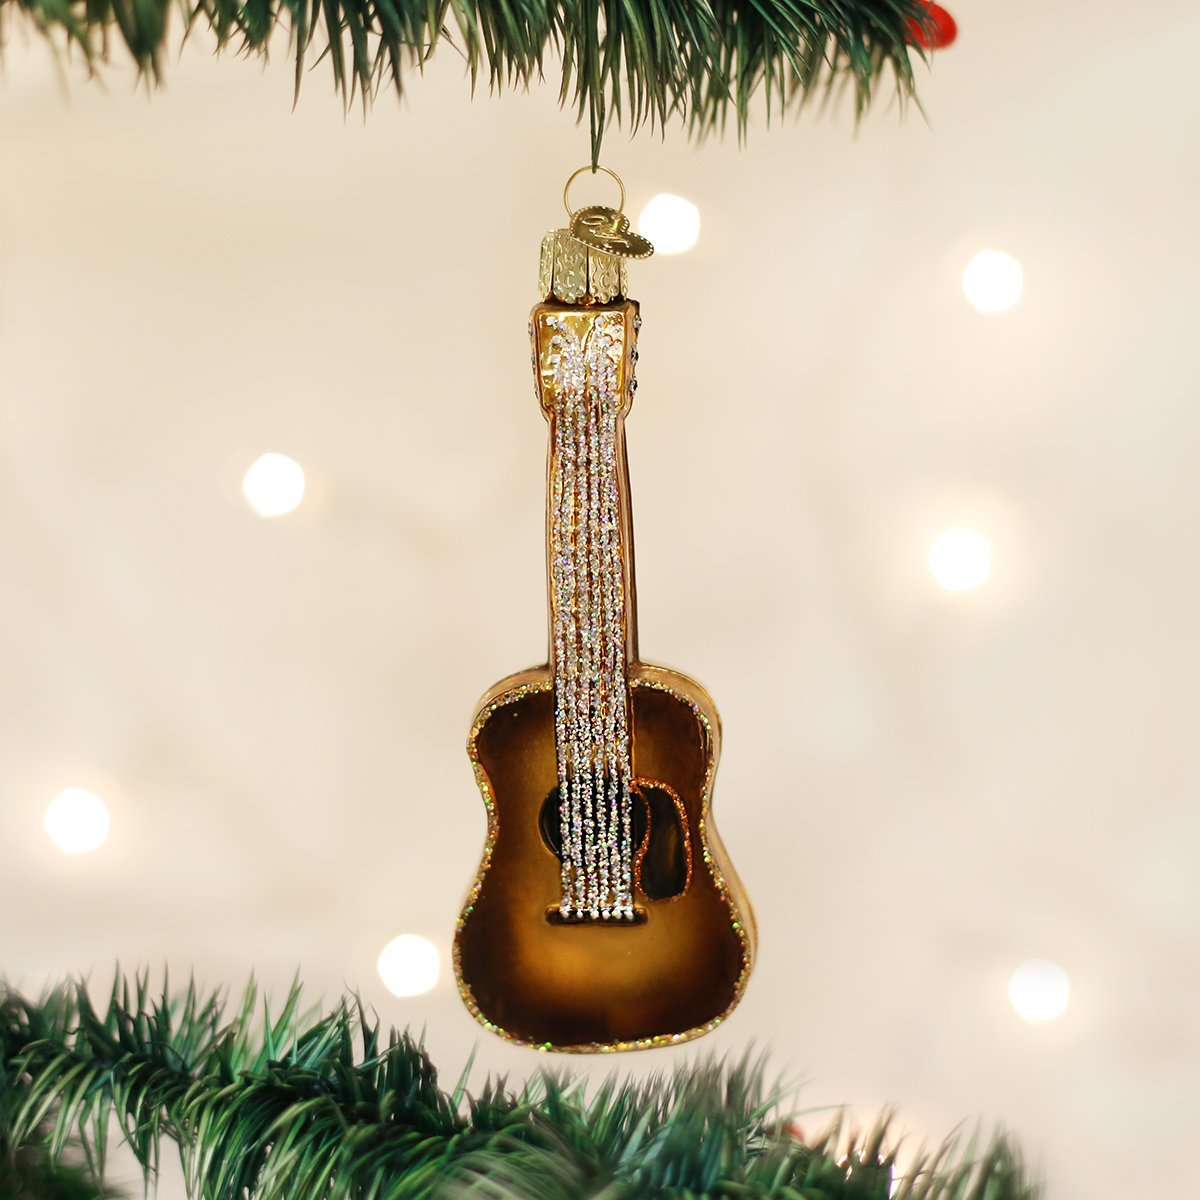 Amazon.com: Old World Christmas Guitar Glass Blown Ornament: Home ...